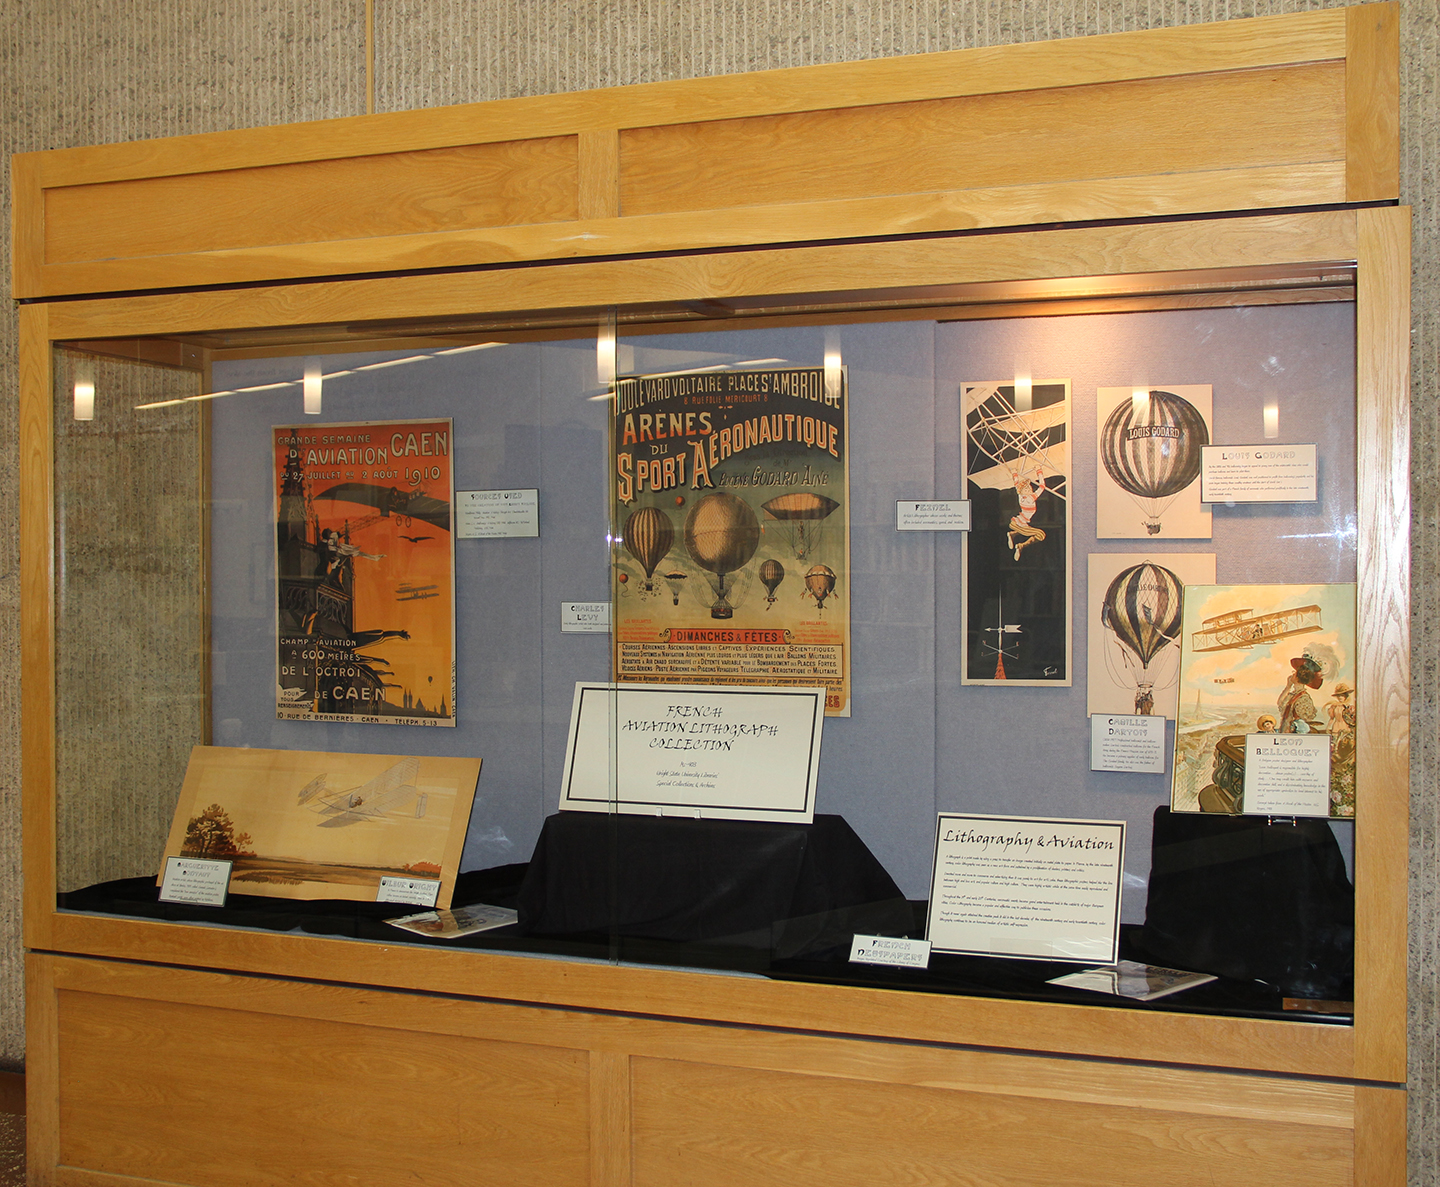 Exhibit of French Aviation Lithographs (MS-403), Nov. 18, 2013